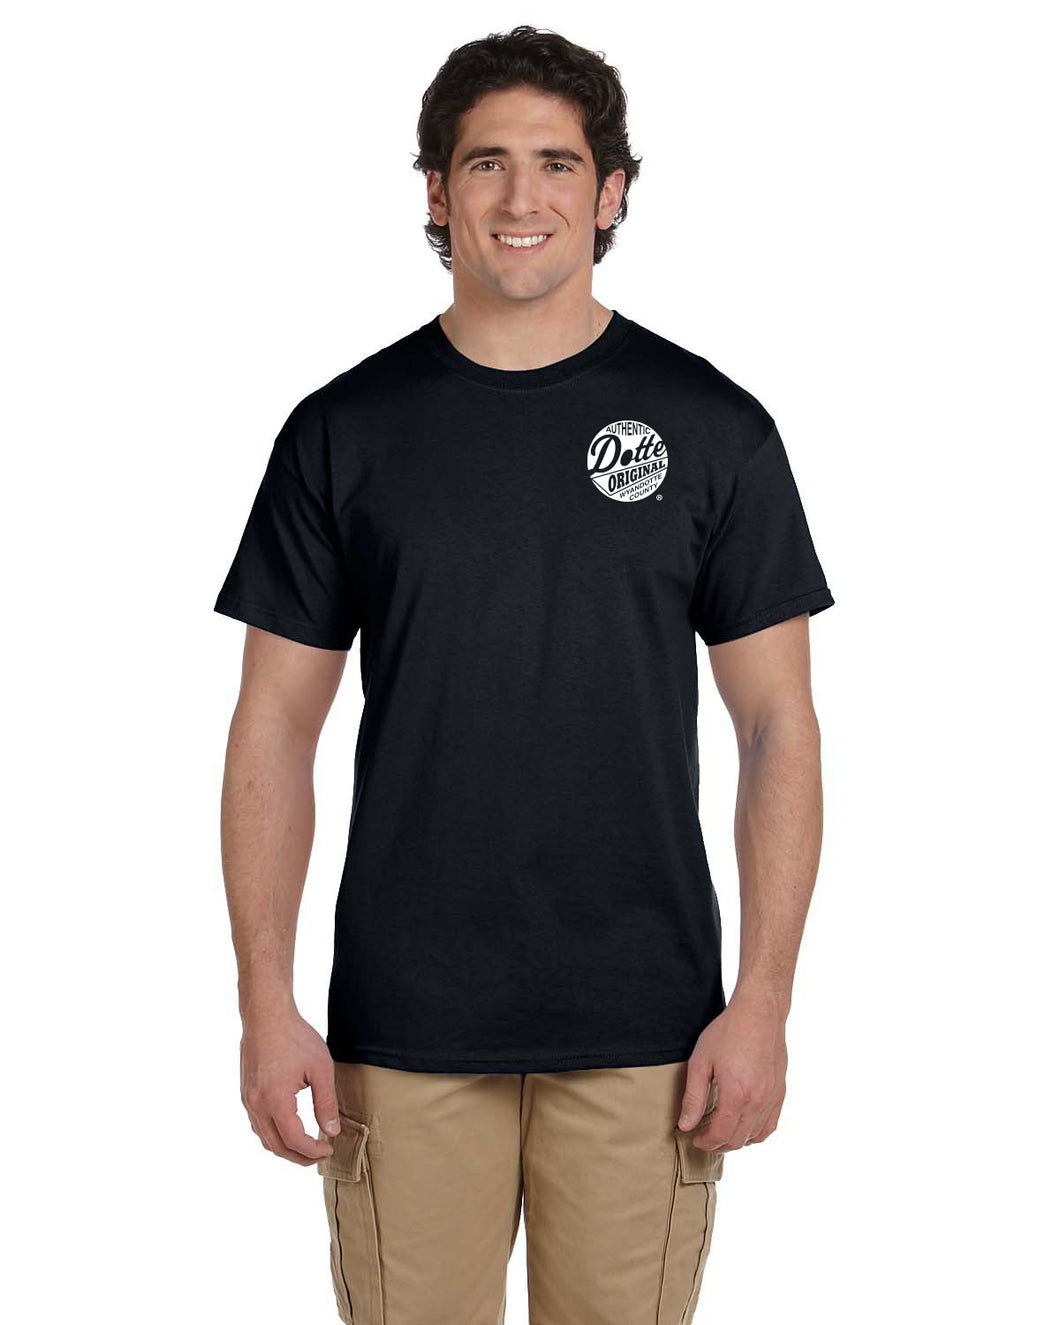 Adult Black Dotte Shirt